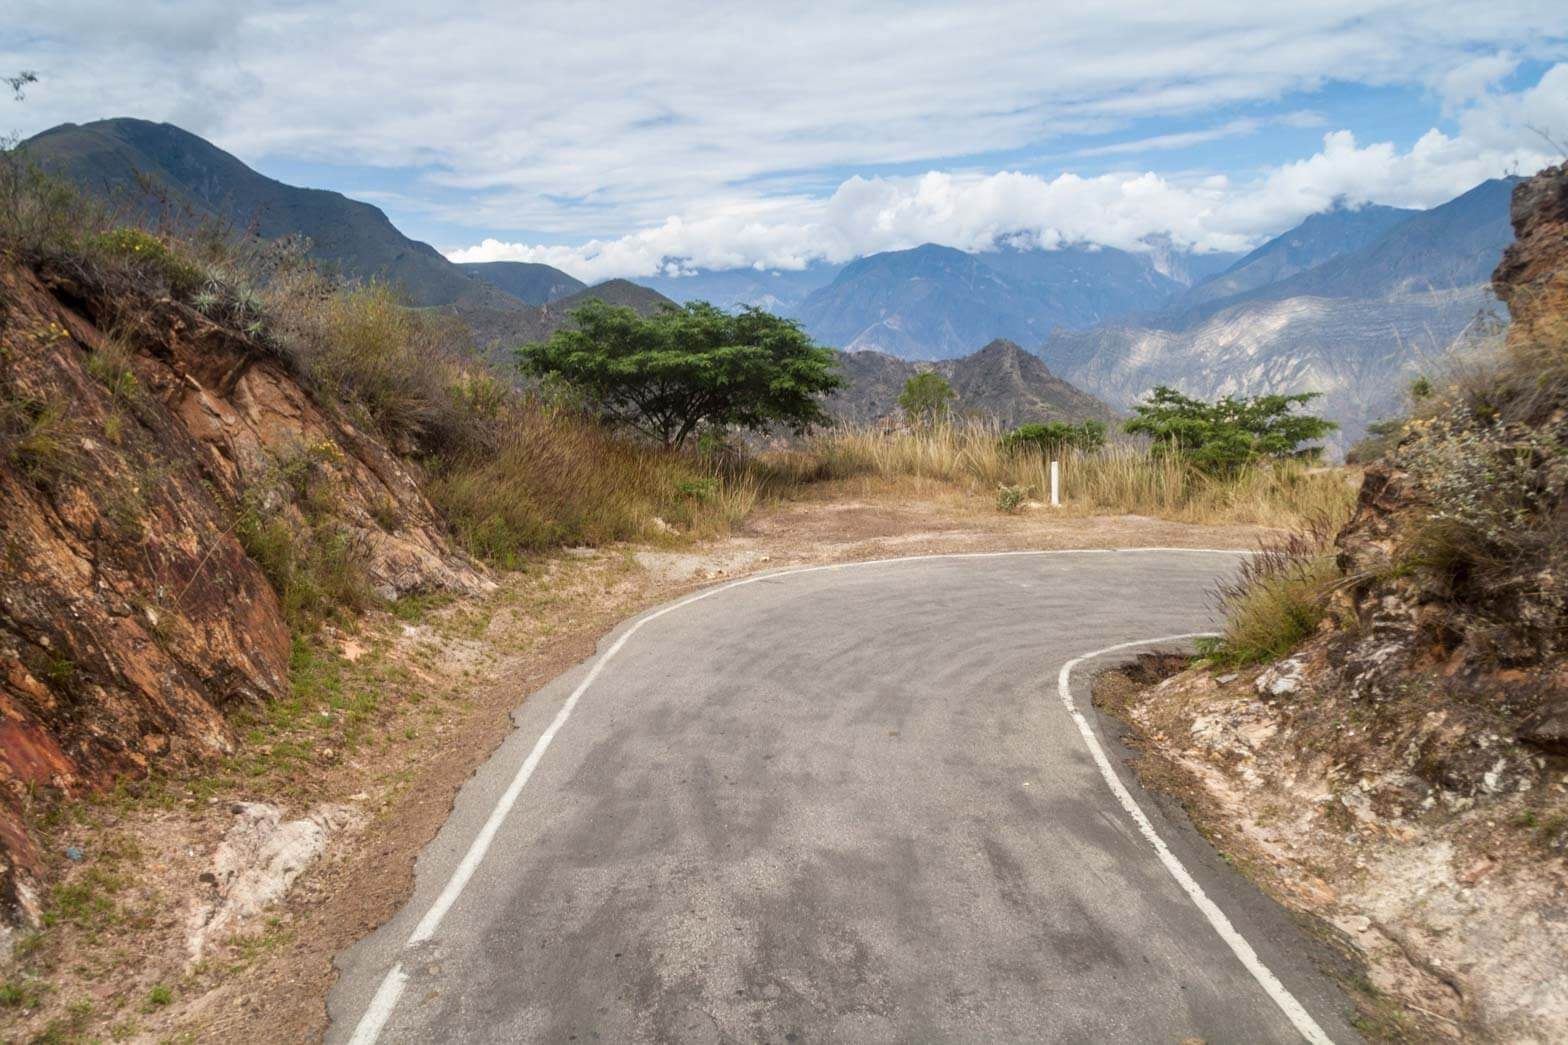 Mountain road in the Cajamarca region, Peru